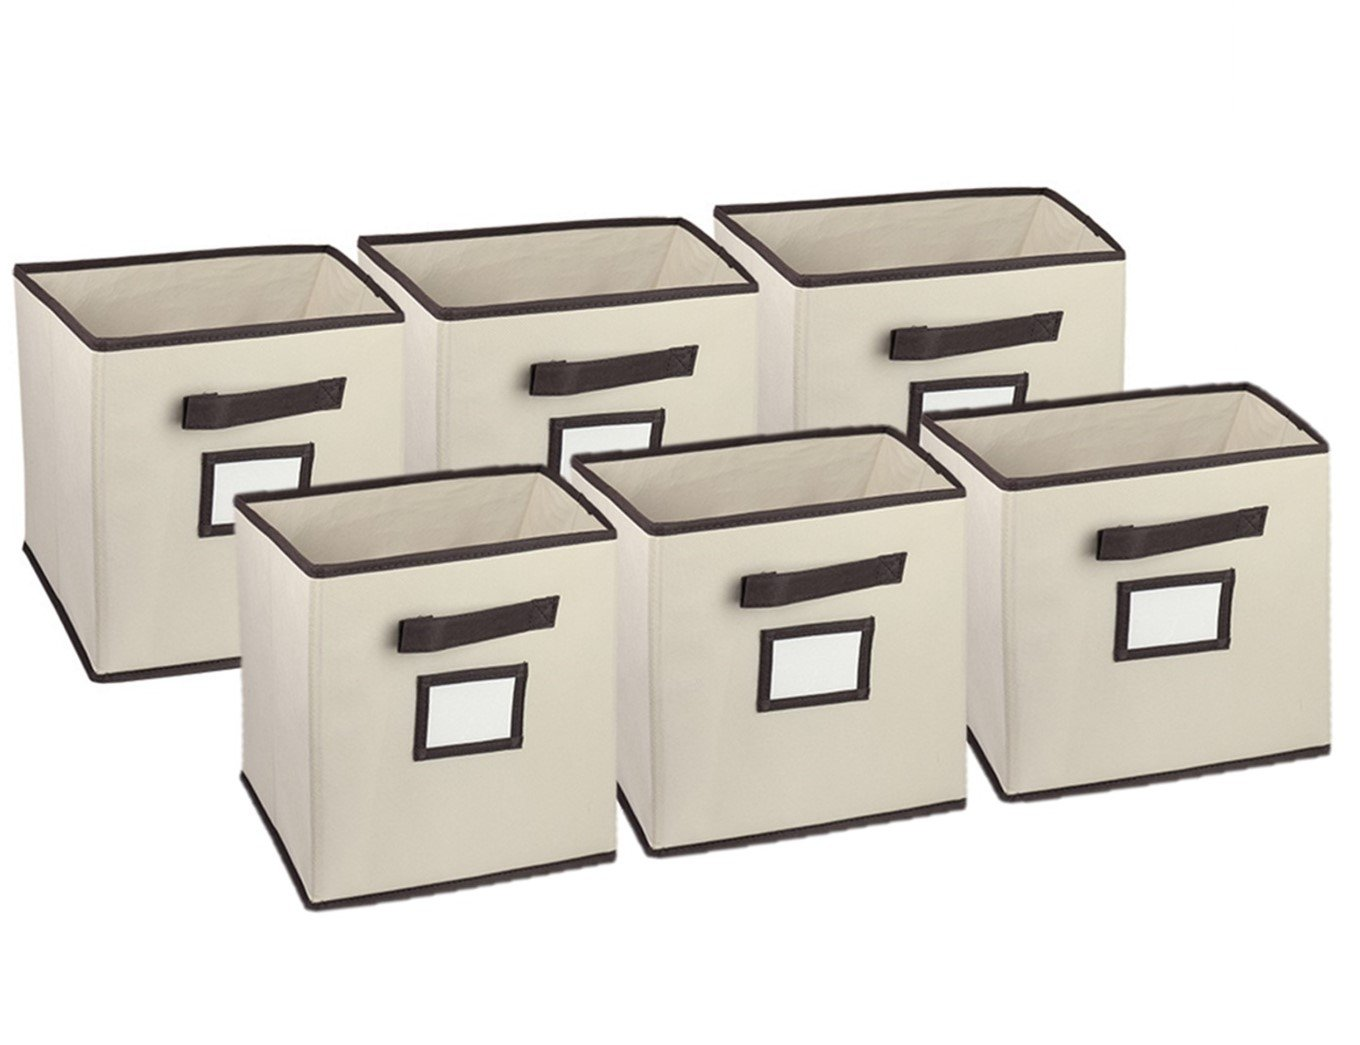 Foldable Storage Cube Closet Organizer, Classic Beige, 6 Pack with Handy Label Window to Make Identifying Contents Easy. Set Includes 6 Collapsible Fabric Cubicle Storage Bins Hangorize 8954